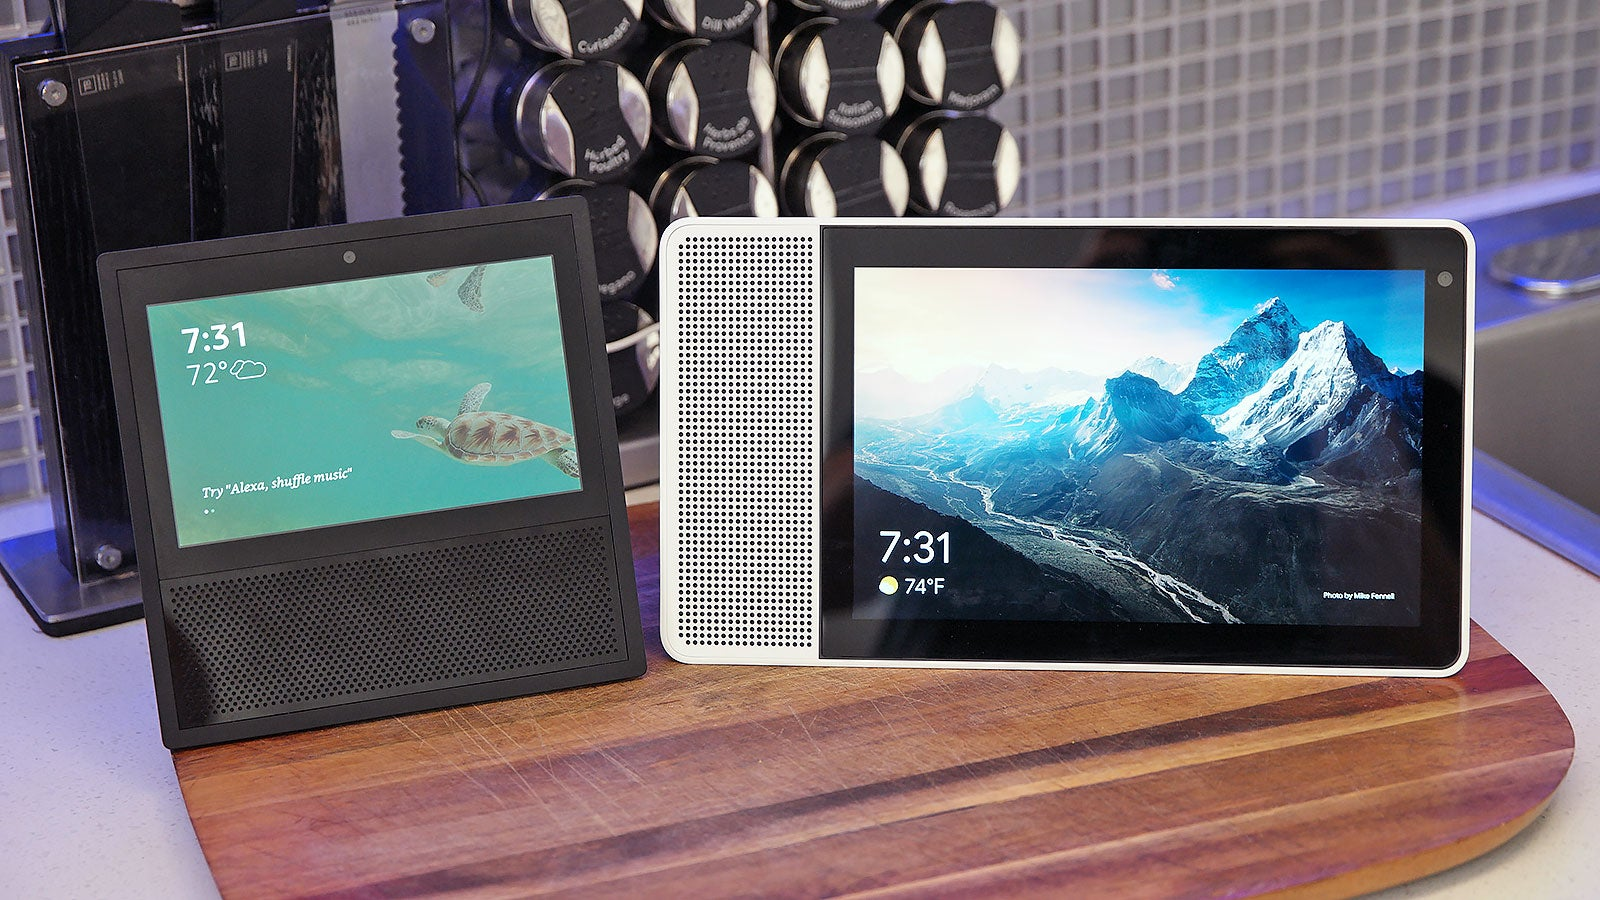 The Best Smart Display For Controlling Your Dumb Home